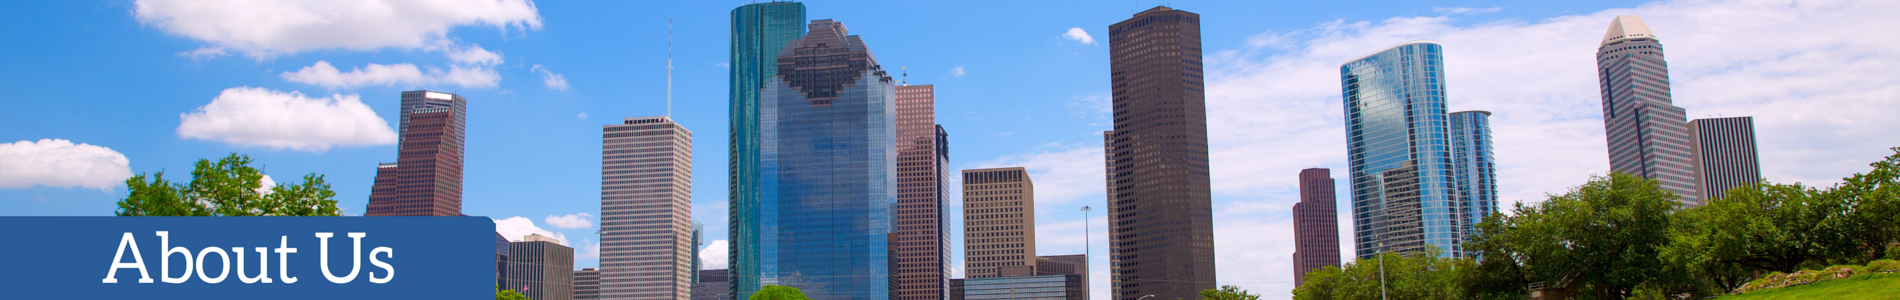 About Stone Bond Technology that is HQ Houston, TX